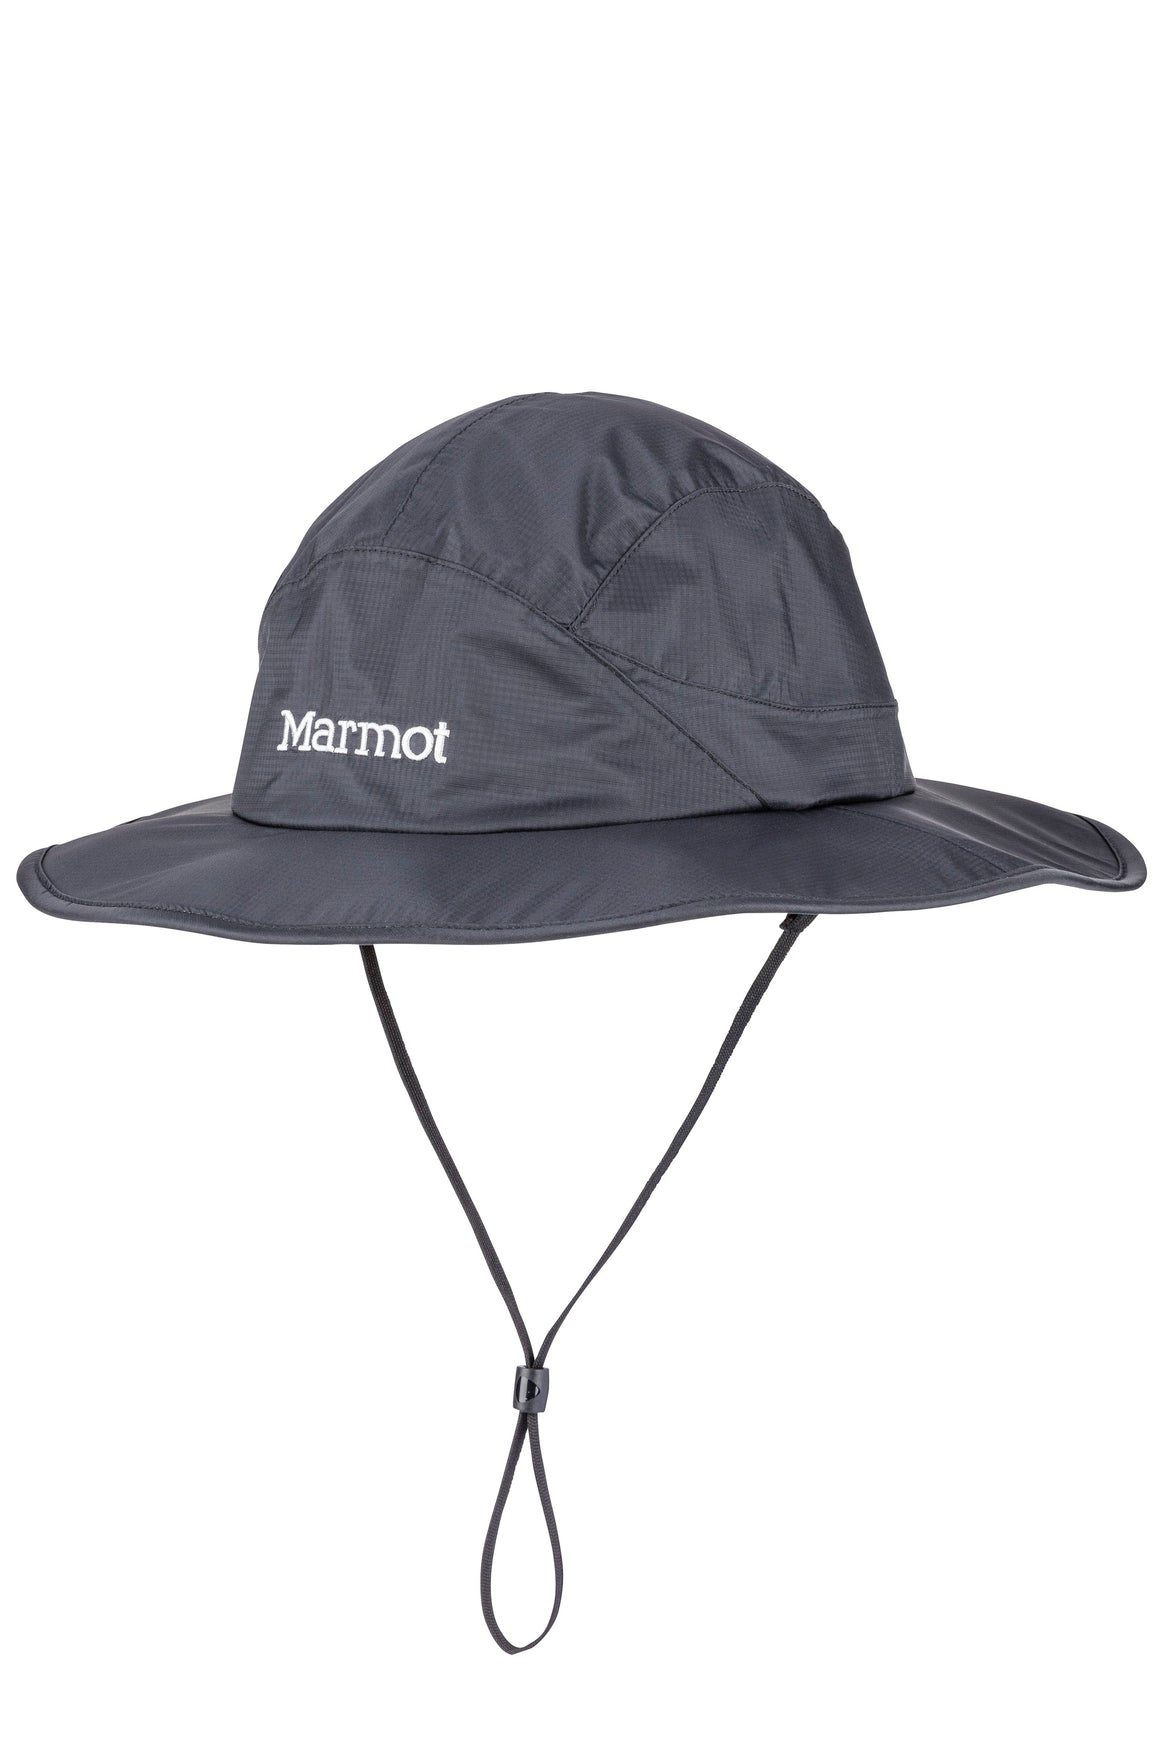 PreCip Eco Safari Hat - Marmot NZ